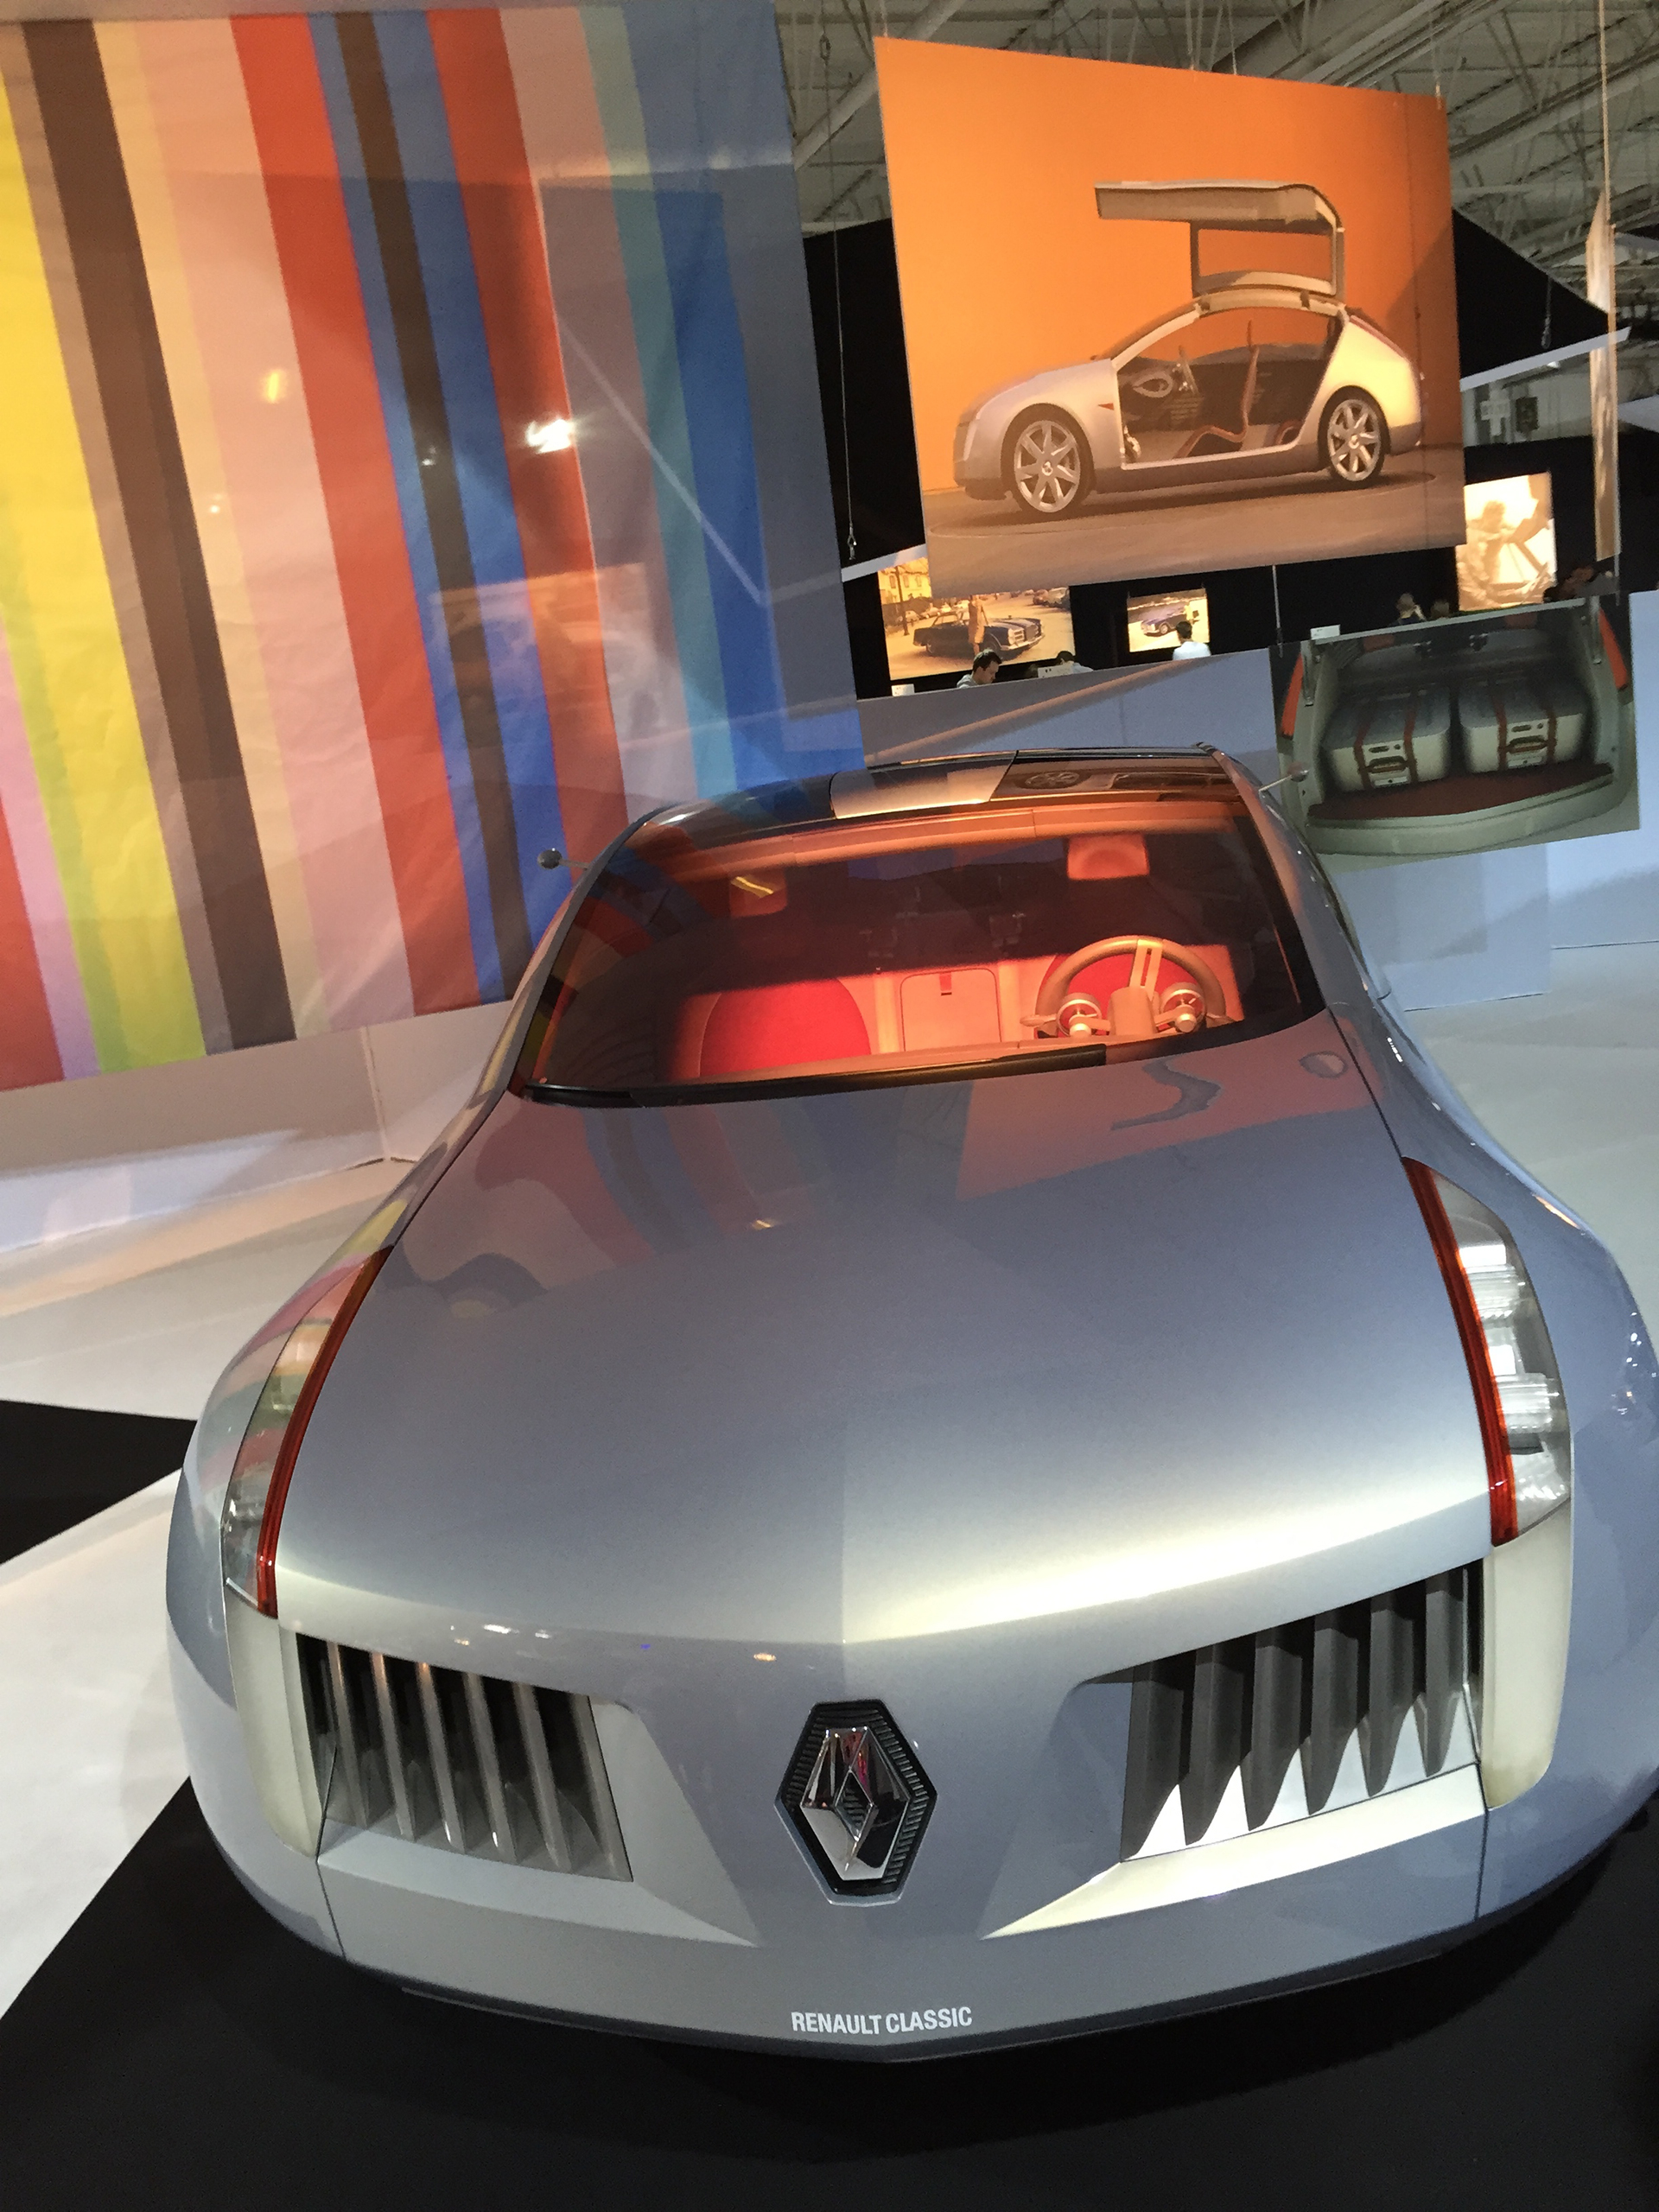 Renault concept Talisman - 2001 - Photo Paris au Mondial de l'Automobile 2014